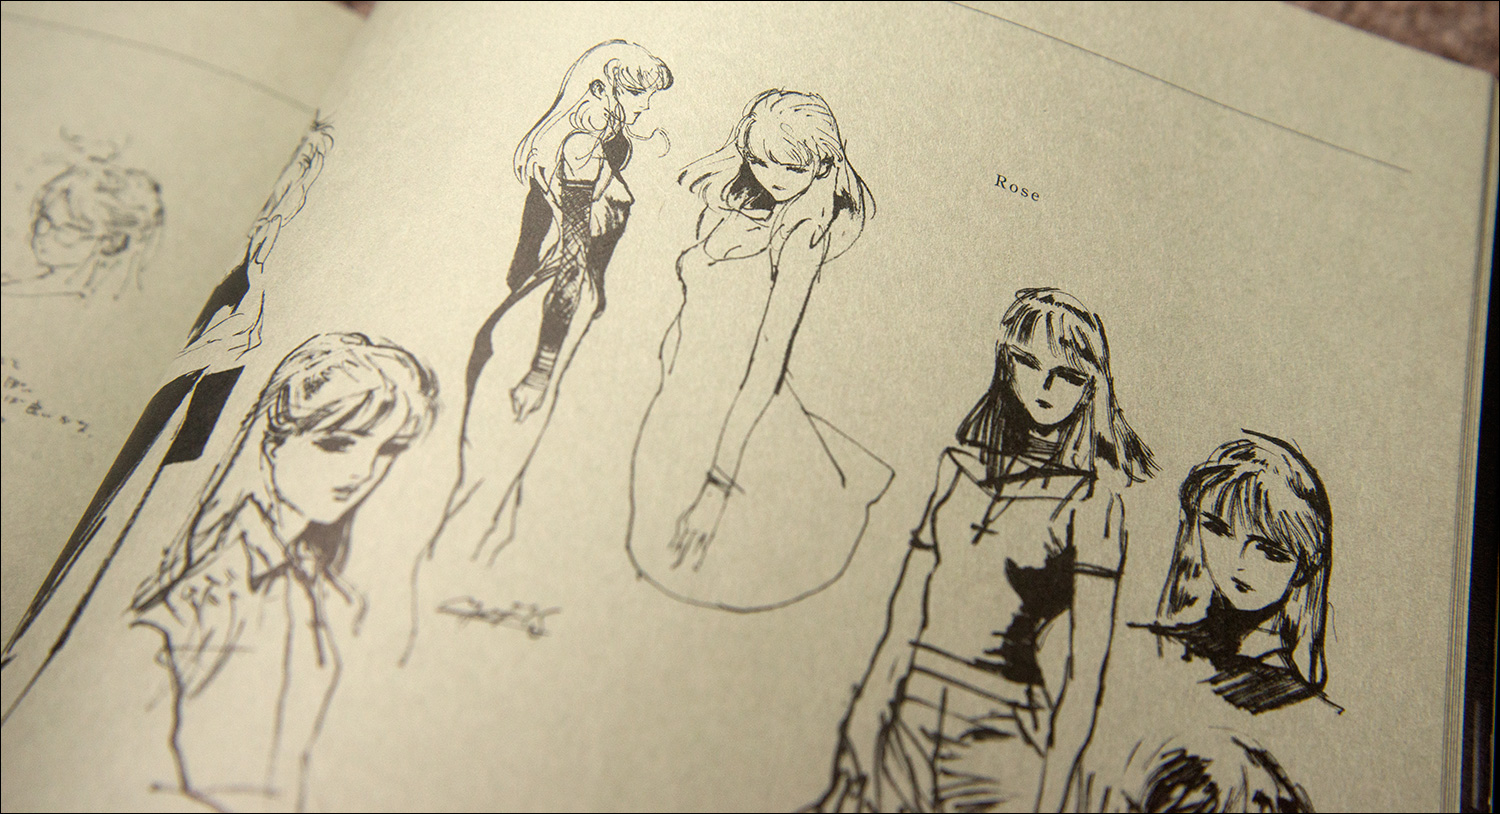 The-Art-of-Metal-Gear-Solid-2-Rose-Sketches